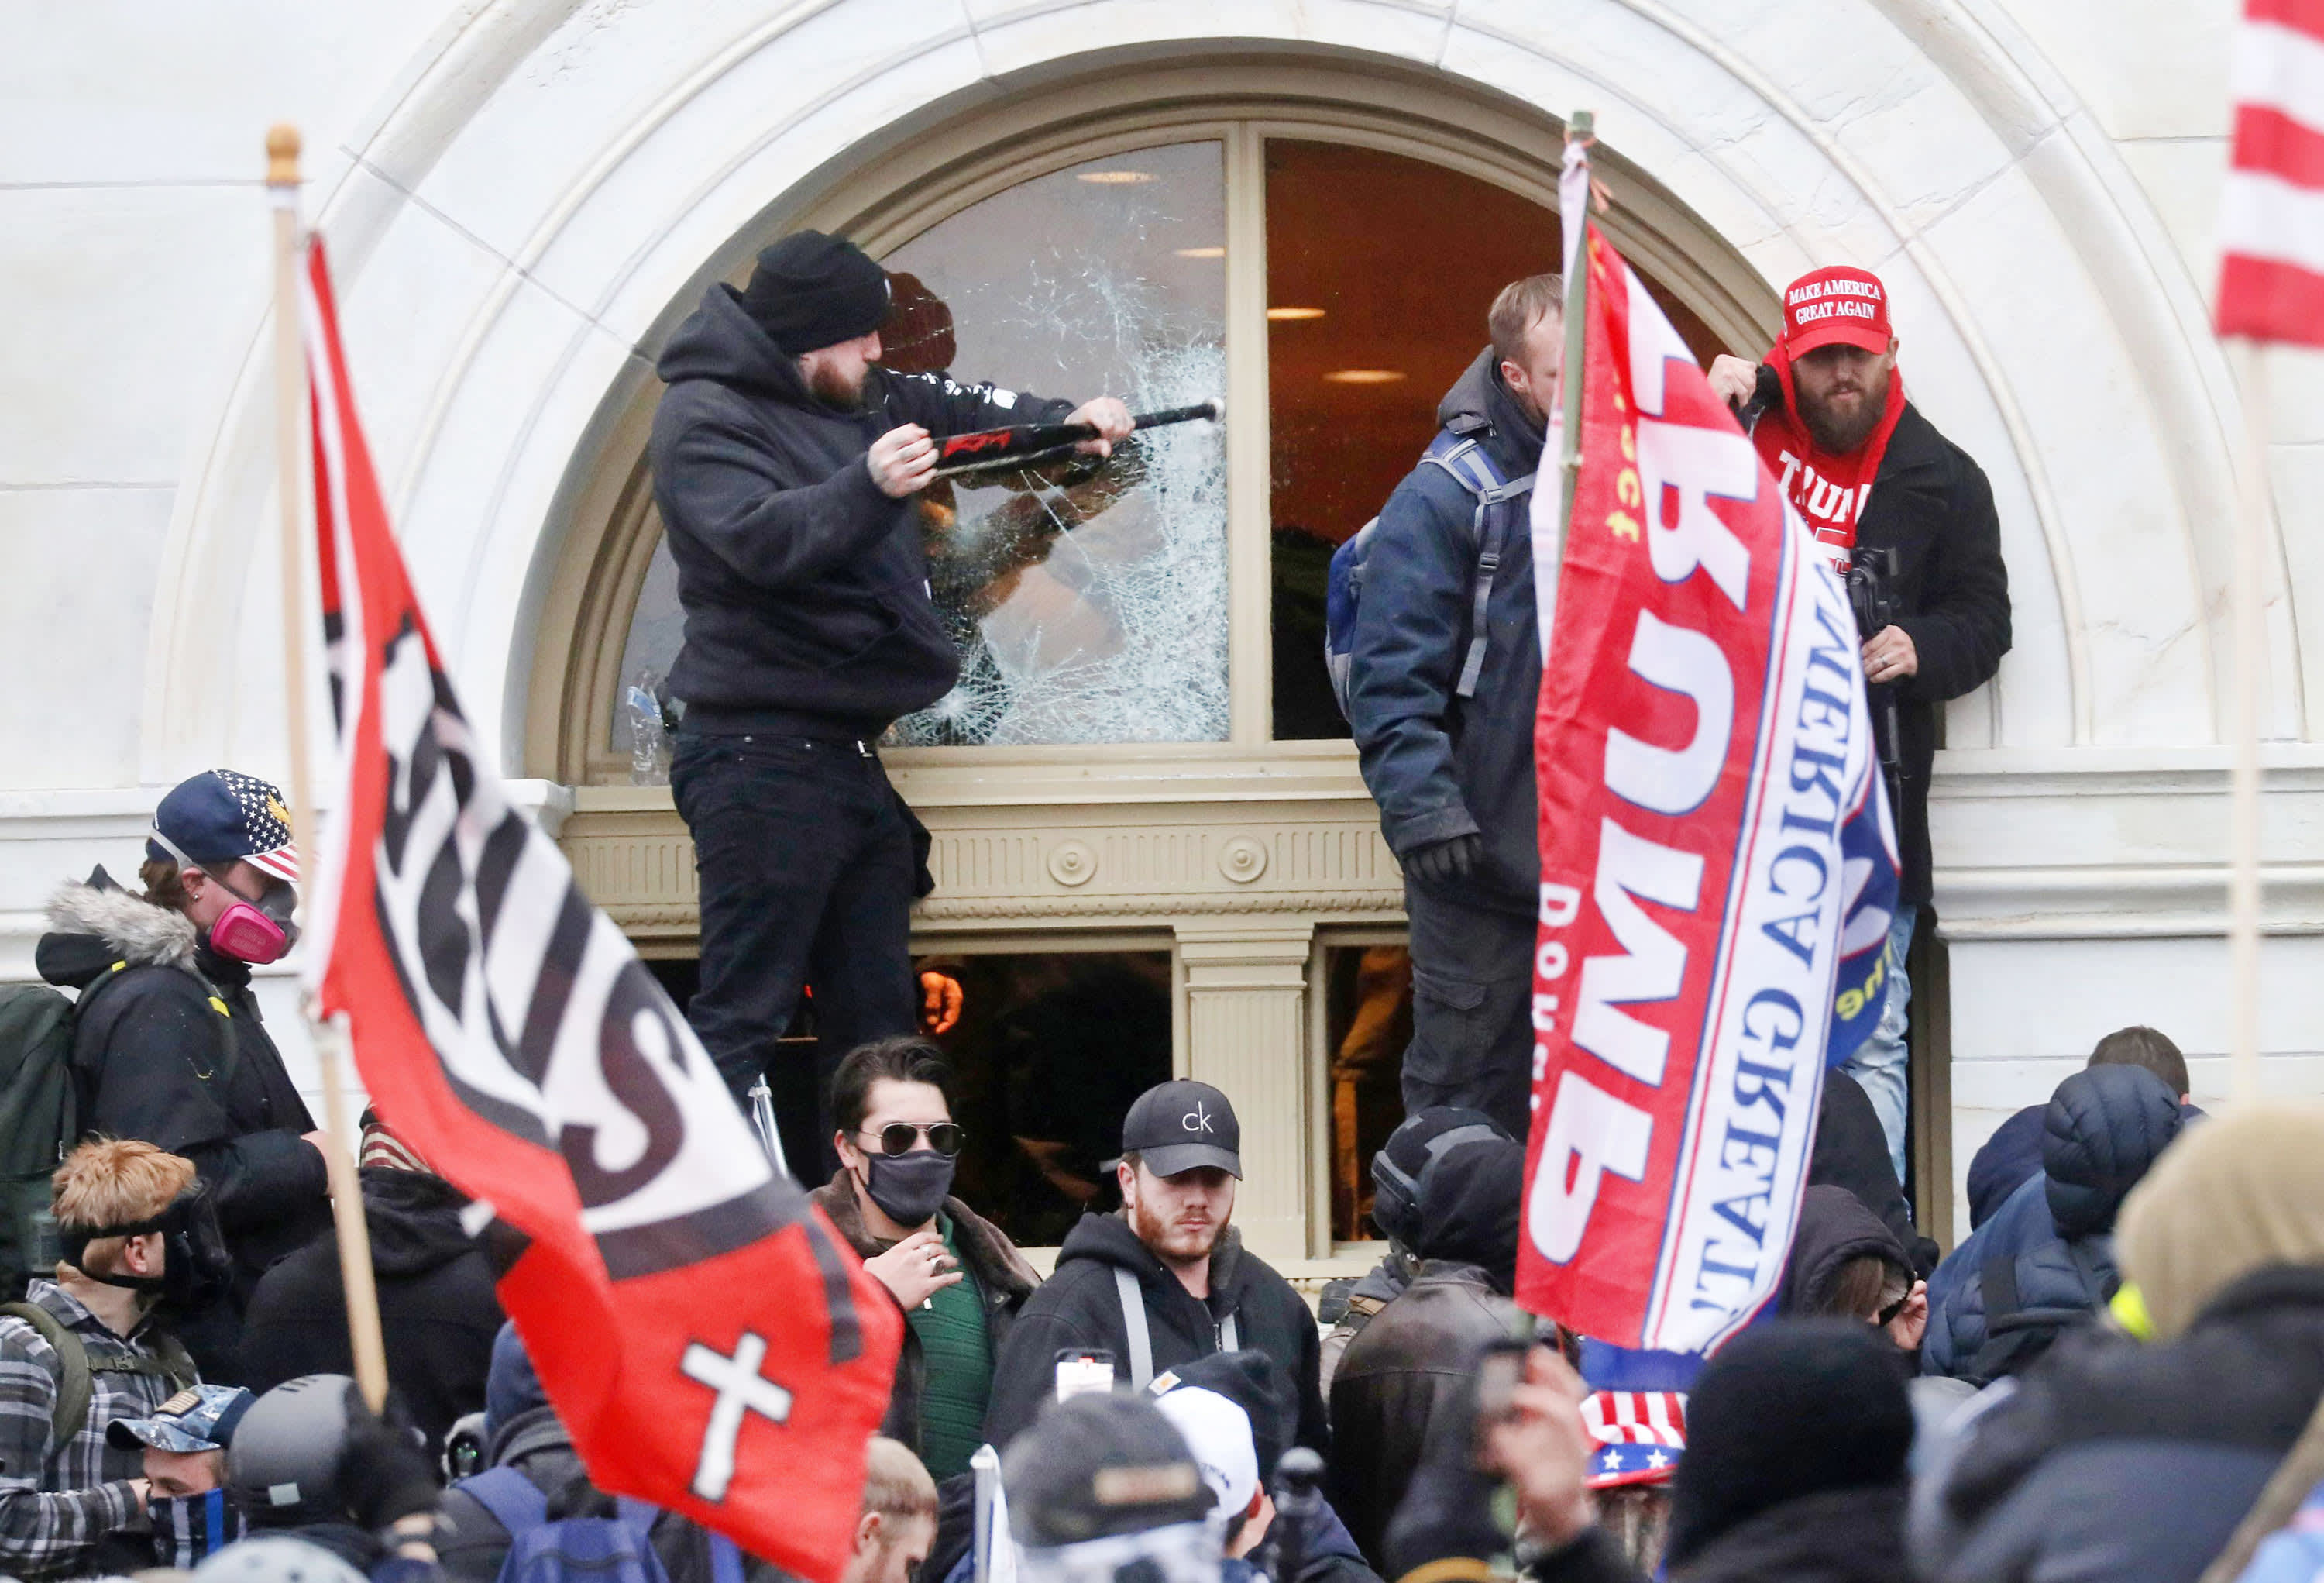 Alleged Capitol rioters are still being arrested four months after the insurrection